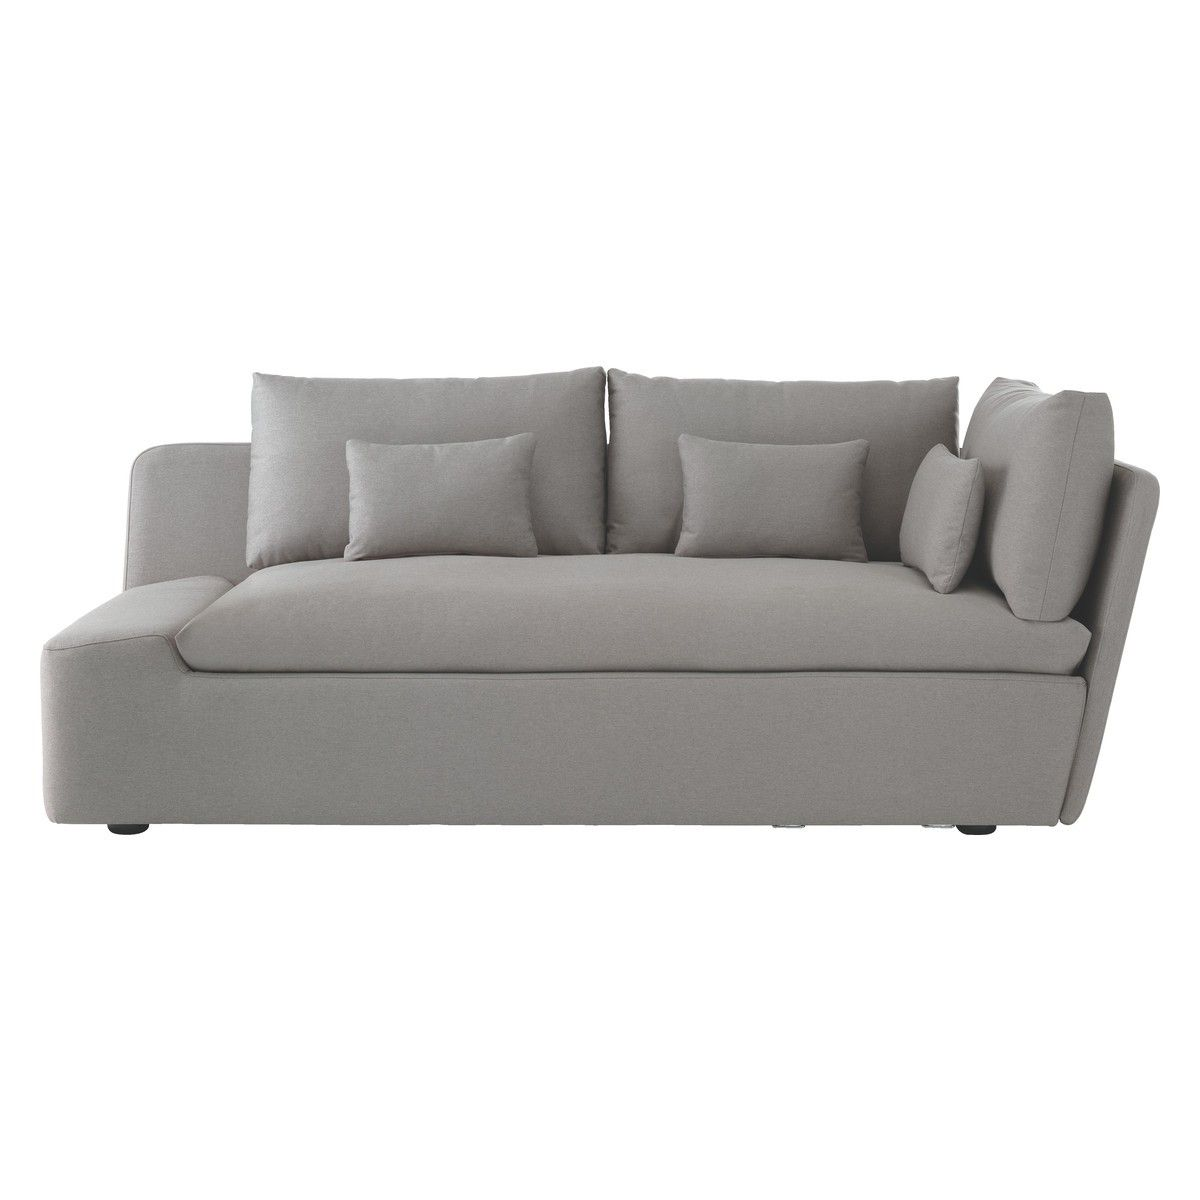 KASHA Grey fabric left-arm lounger